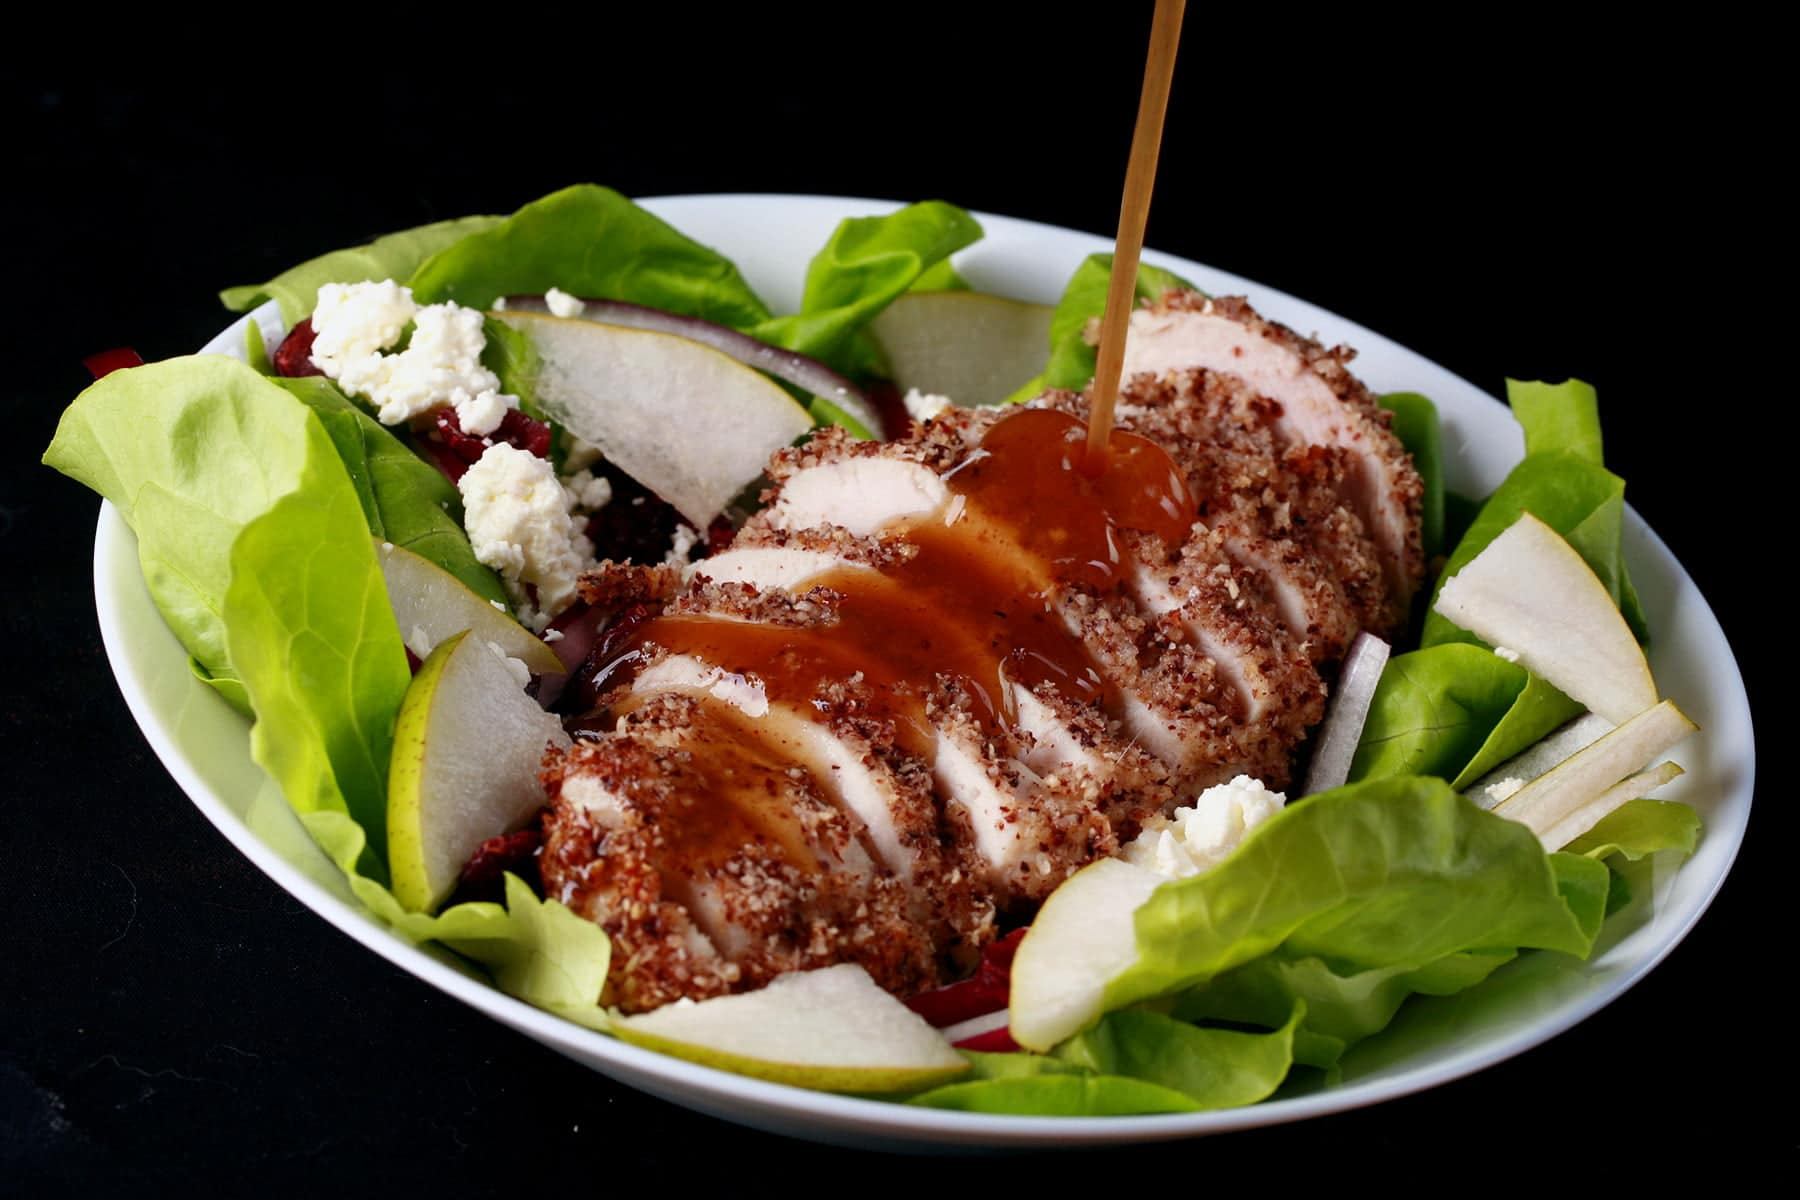 A sliced hazelnut crusted chicken breast sits a top a salad of greens, pear slices, dried cranberries, red onion slices, and feta. A golden brown balsamic vinaigrette is being poured across the chicken.